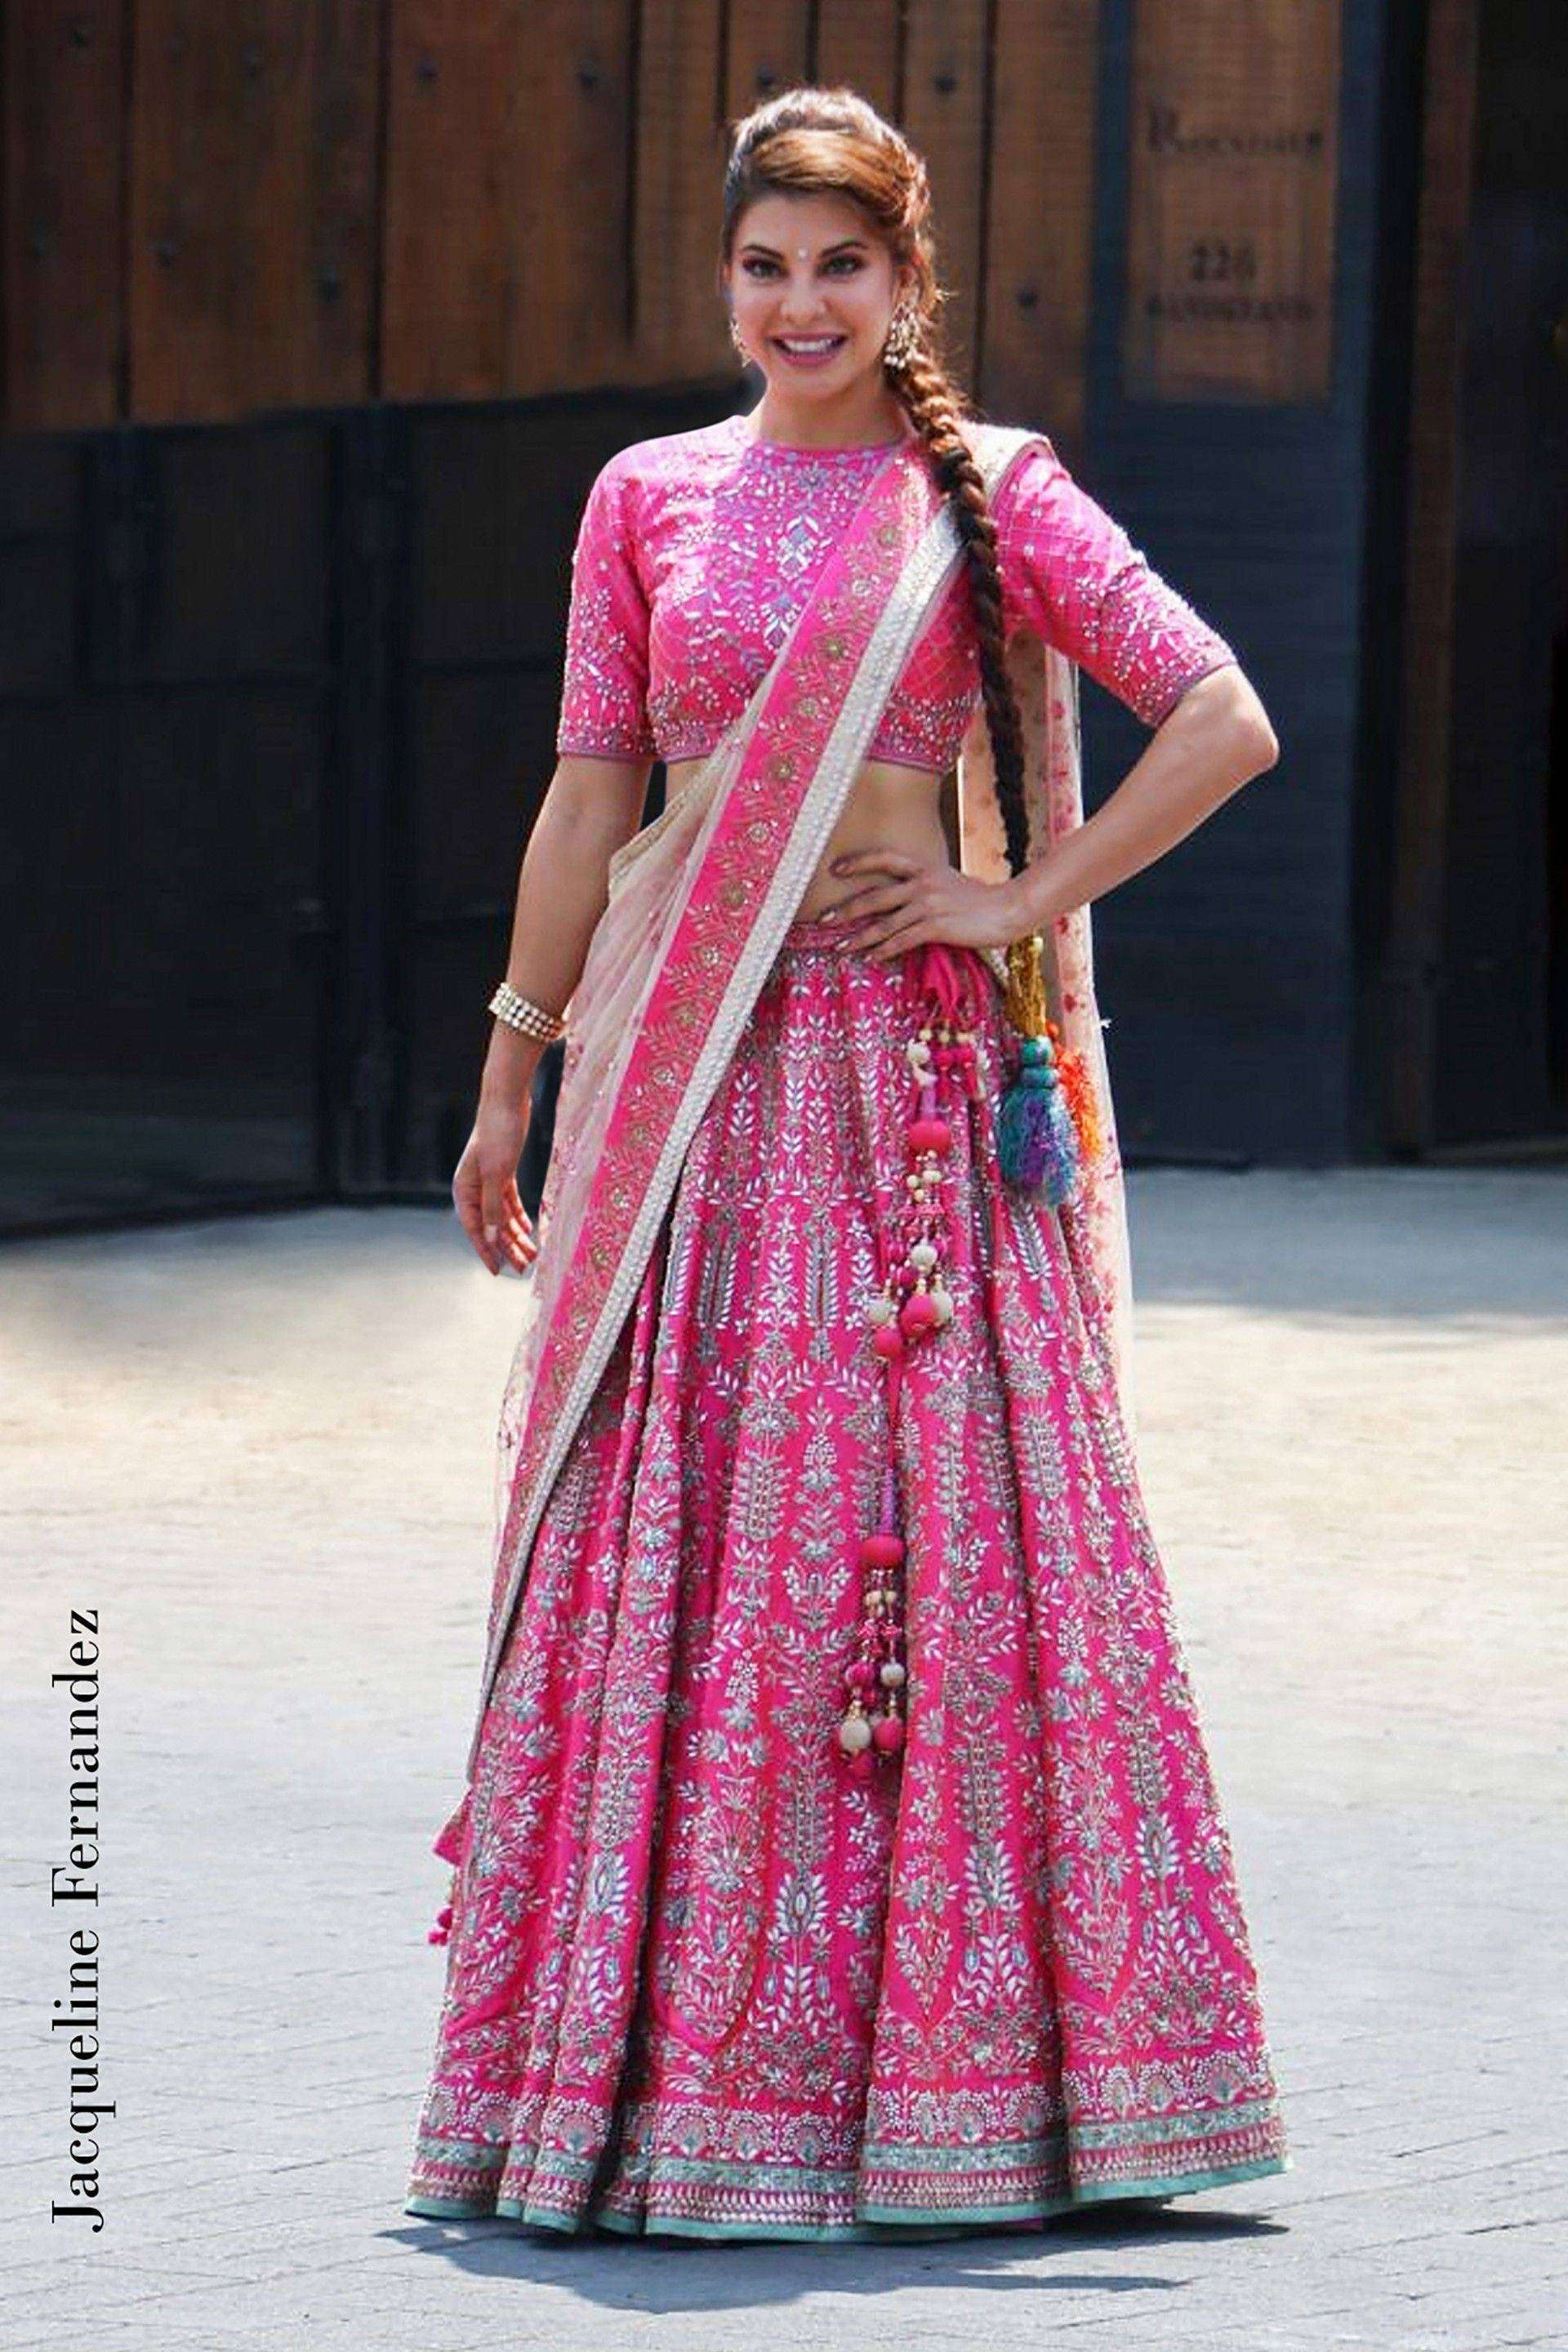 57caf94101b1 The last range of bridal lehengas that you will find at the House of Anita  Dongre is made-to-order. Depending on the customization, these lehengas  will cost ...